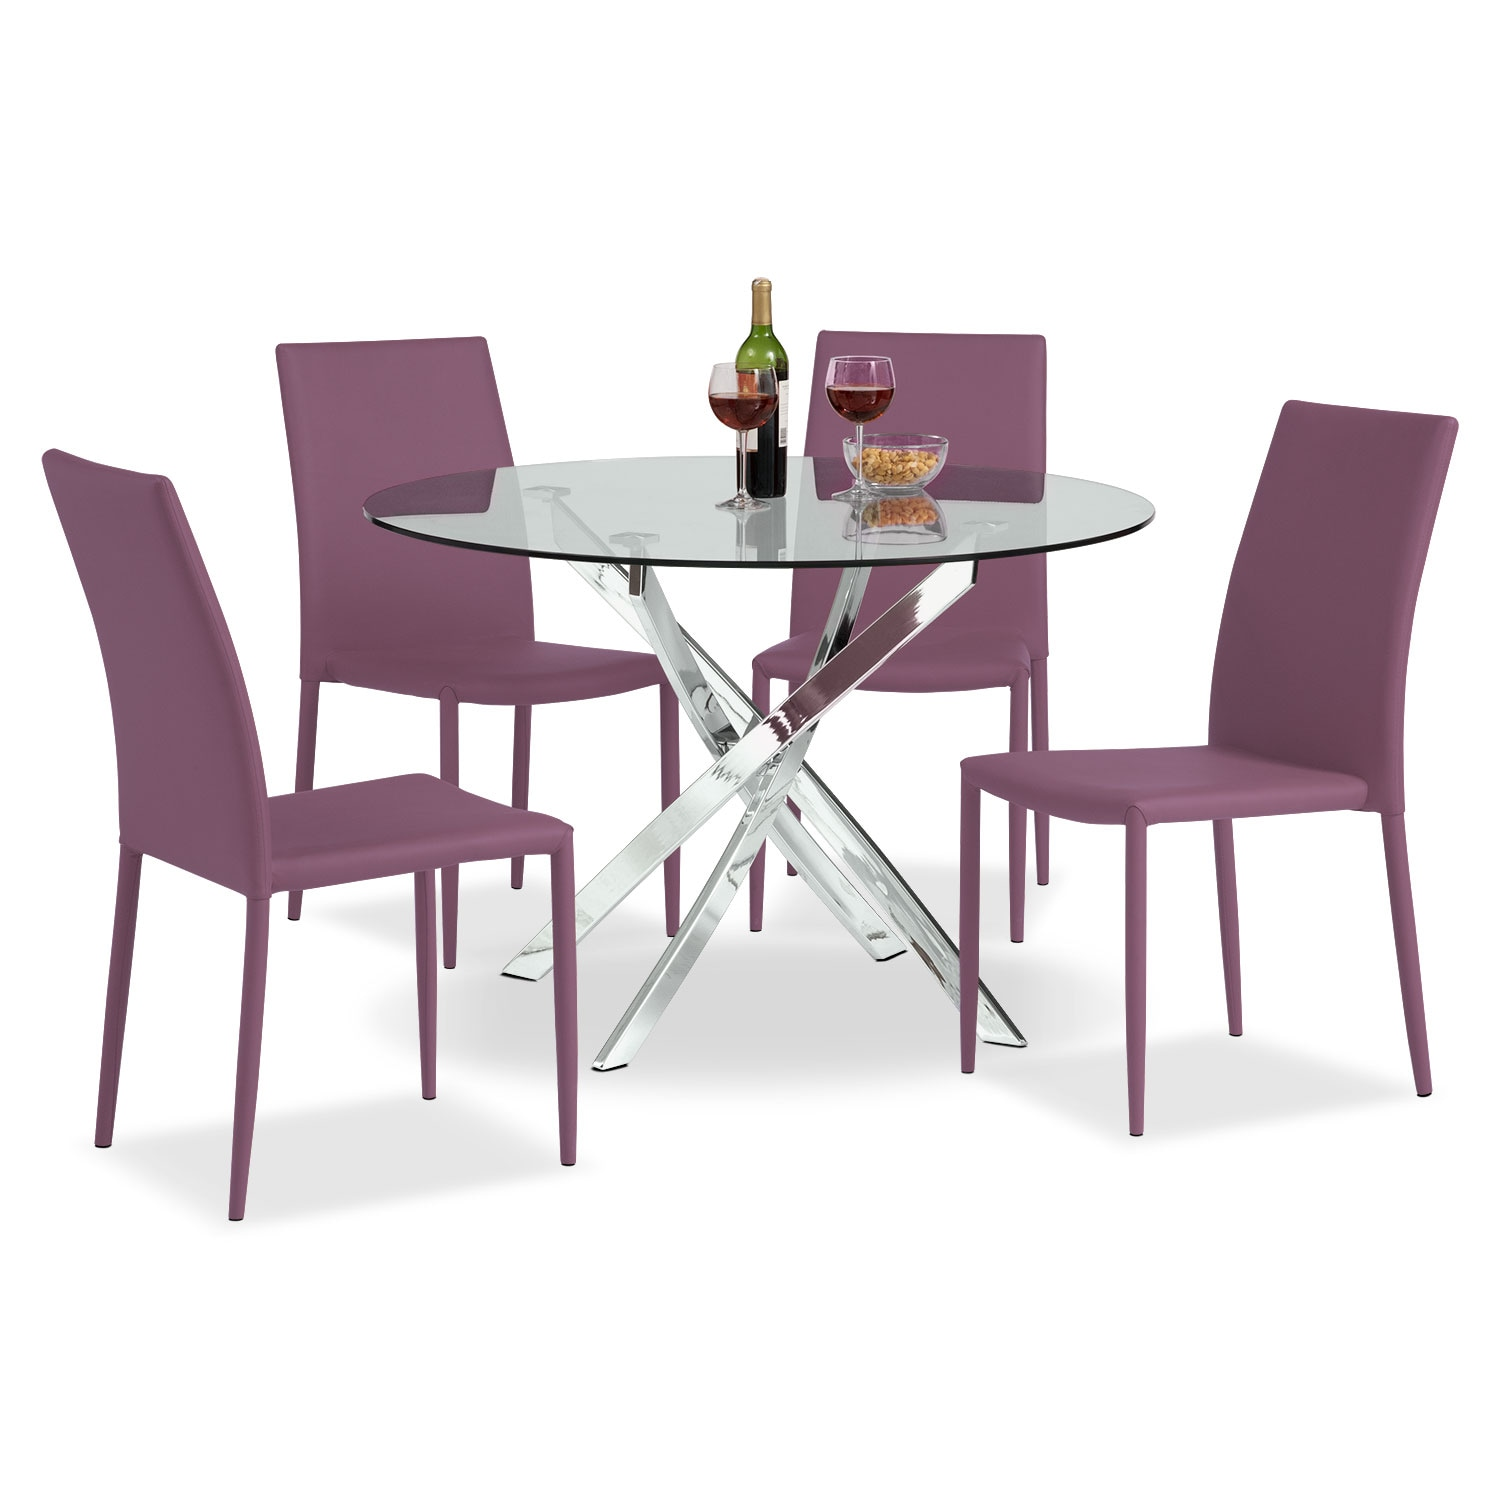 Dining Room Furniture - Quattro Table and 4 Chairs - Purple